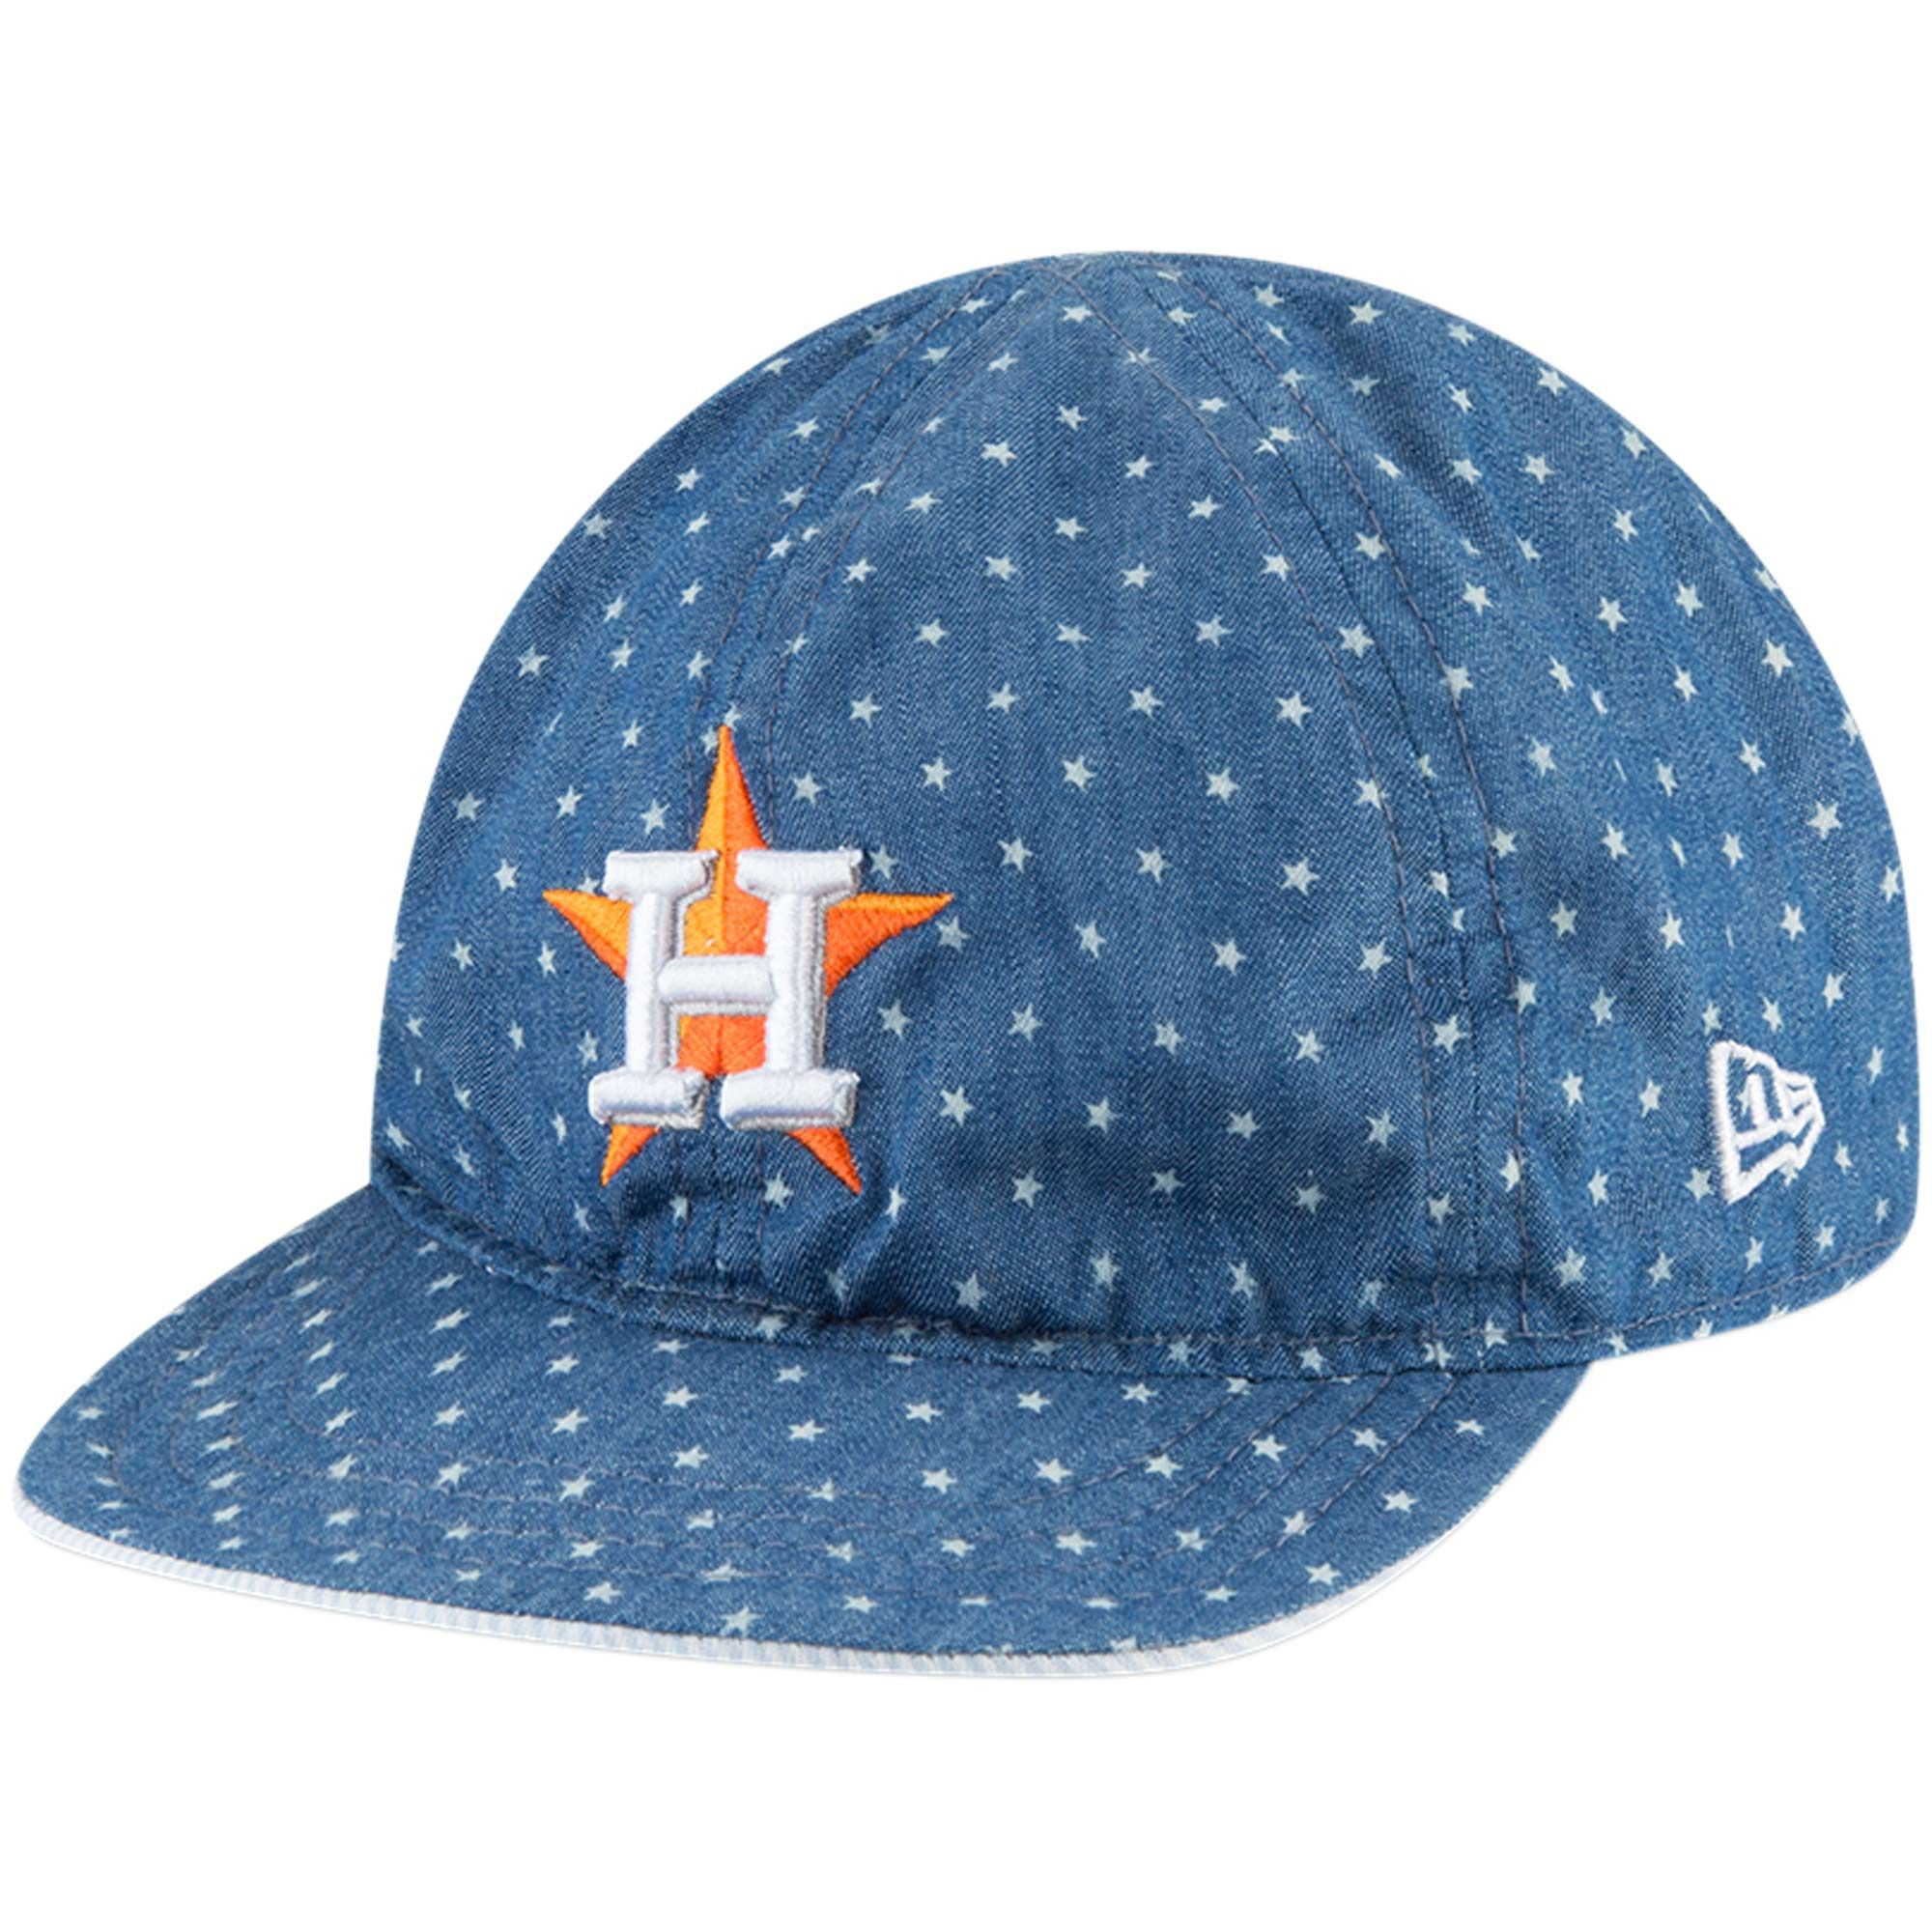 63894c2470c Houston Astros New Era Toddler Denim Flip 9TWENTY Adjustable Hat – Light  Blue